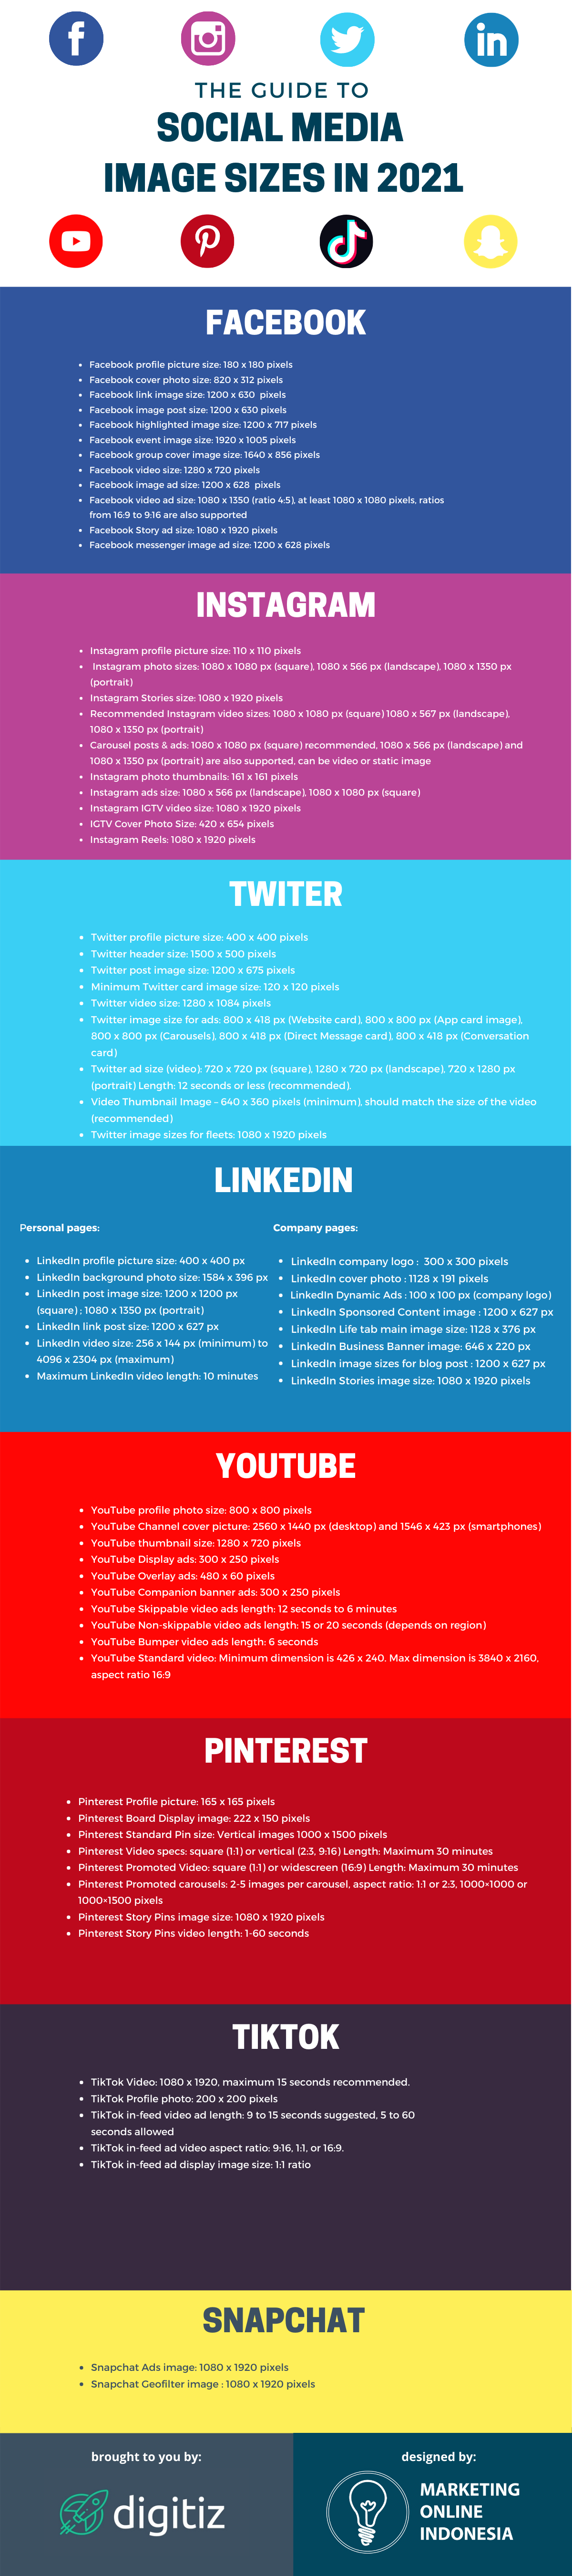 Infographic-Social-Media-Image-Size-Guide-English-infographic-plaza